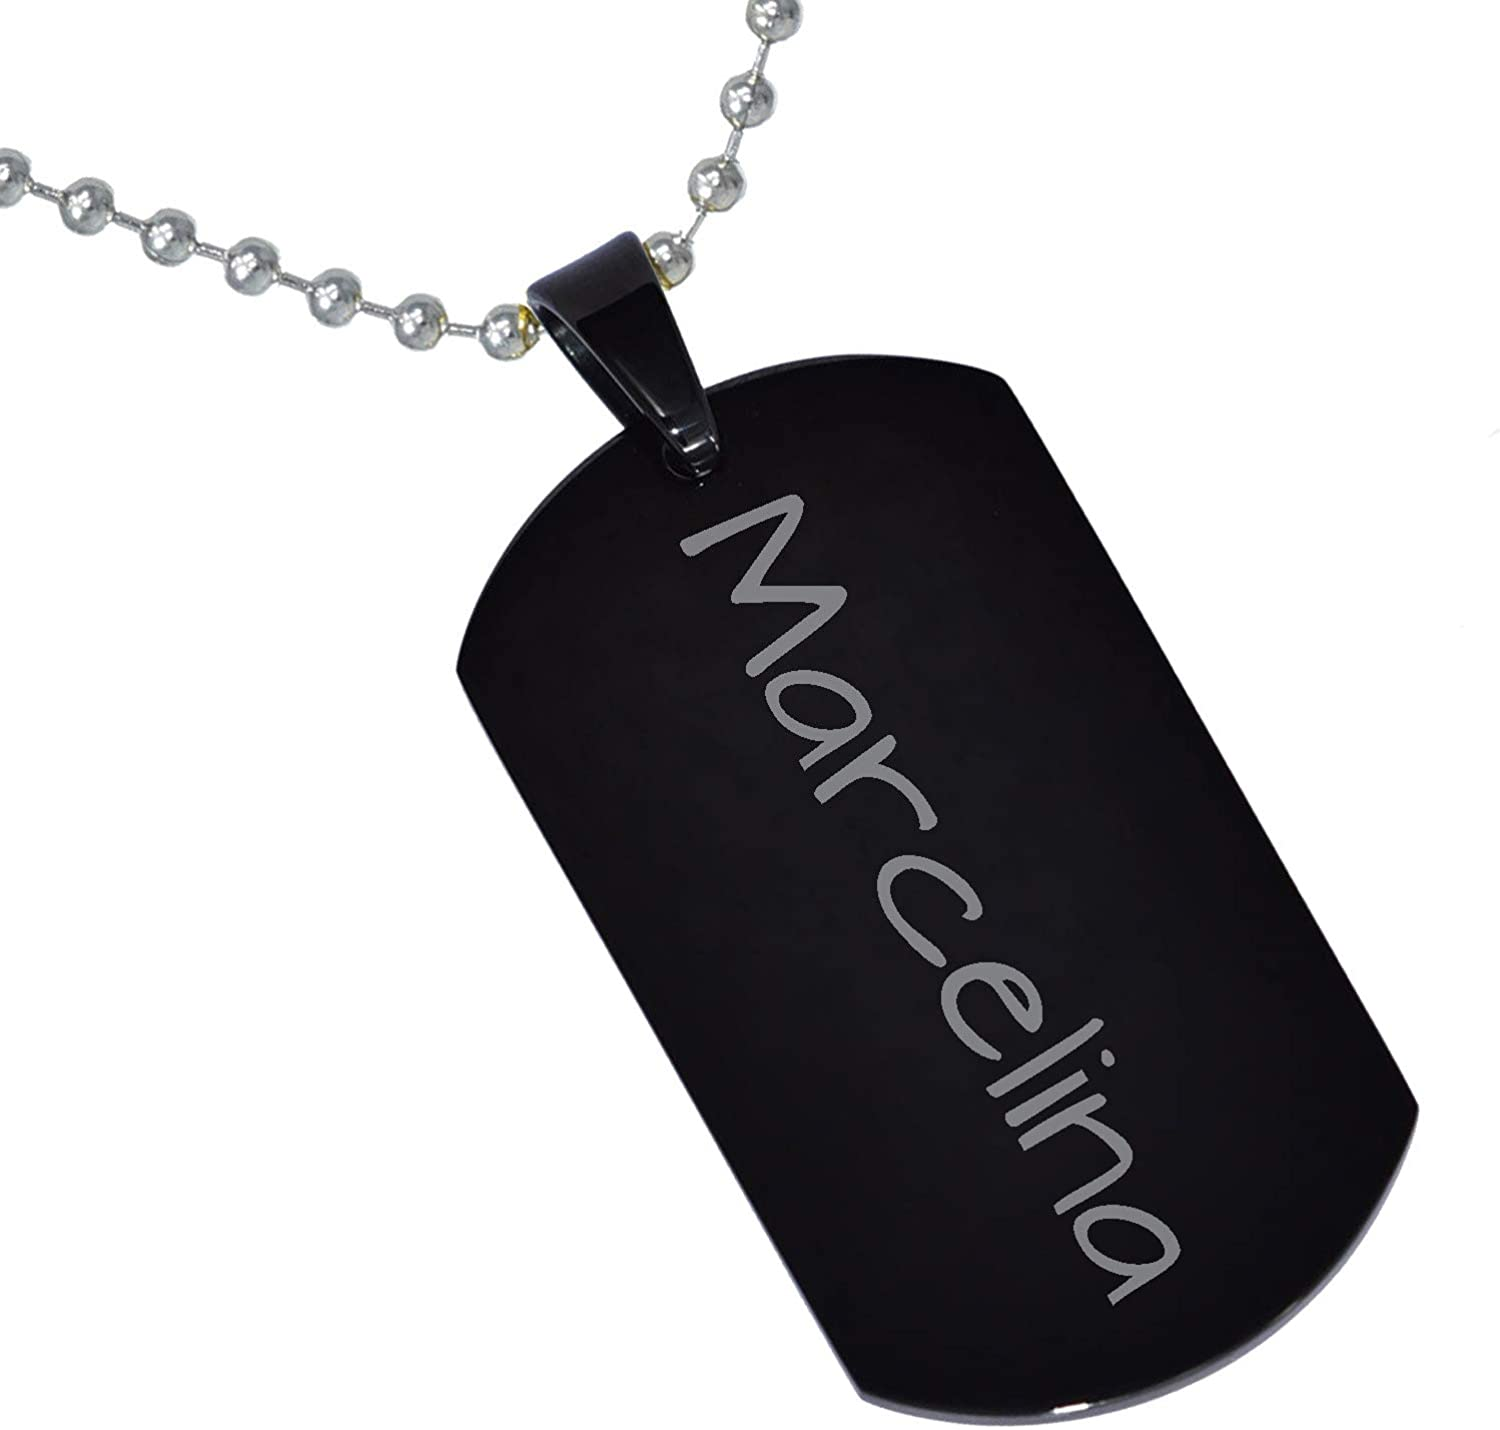 Stainless Steel Silver Gold Black Rose Gold Color Baby Name Marcelina Engraved Personalized Gifts For Son Daughter Boyfriend Girlfriend Initial Customizable Pendant Necklace Dog Tags 24 Ball Chain